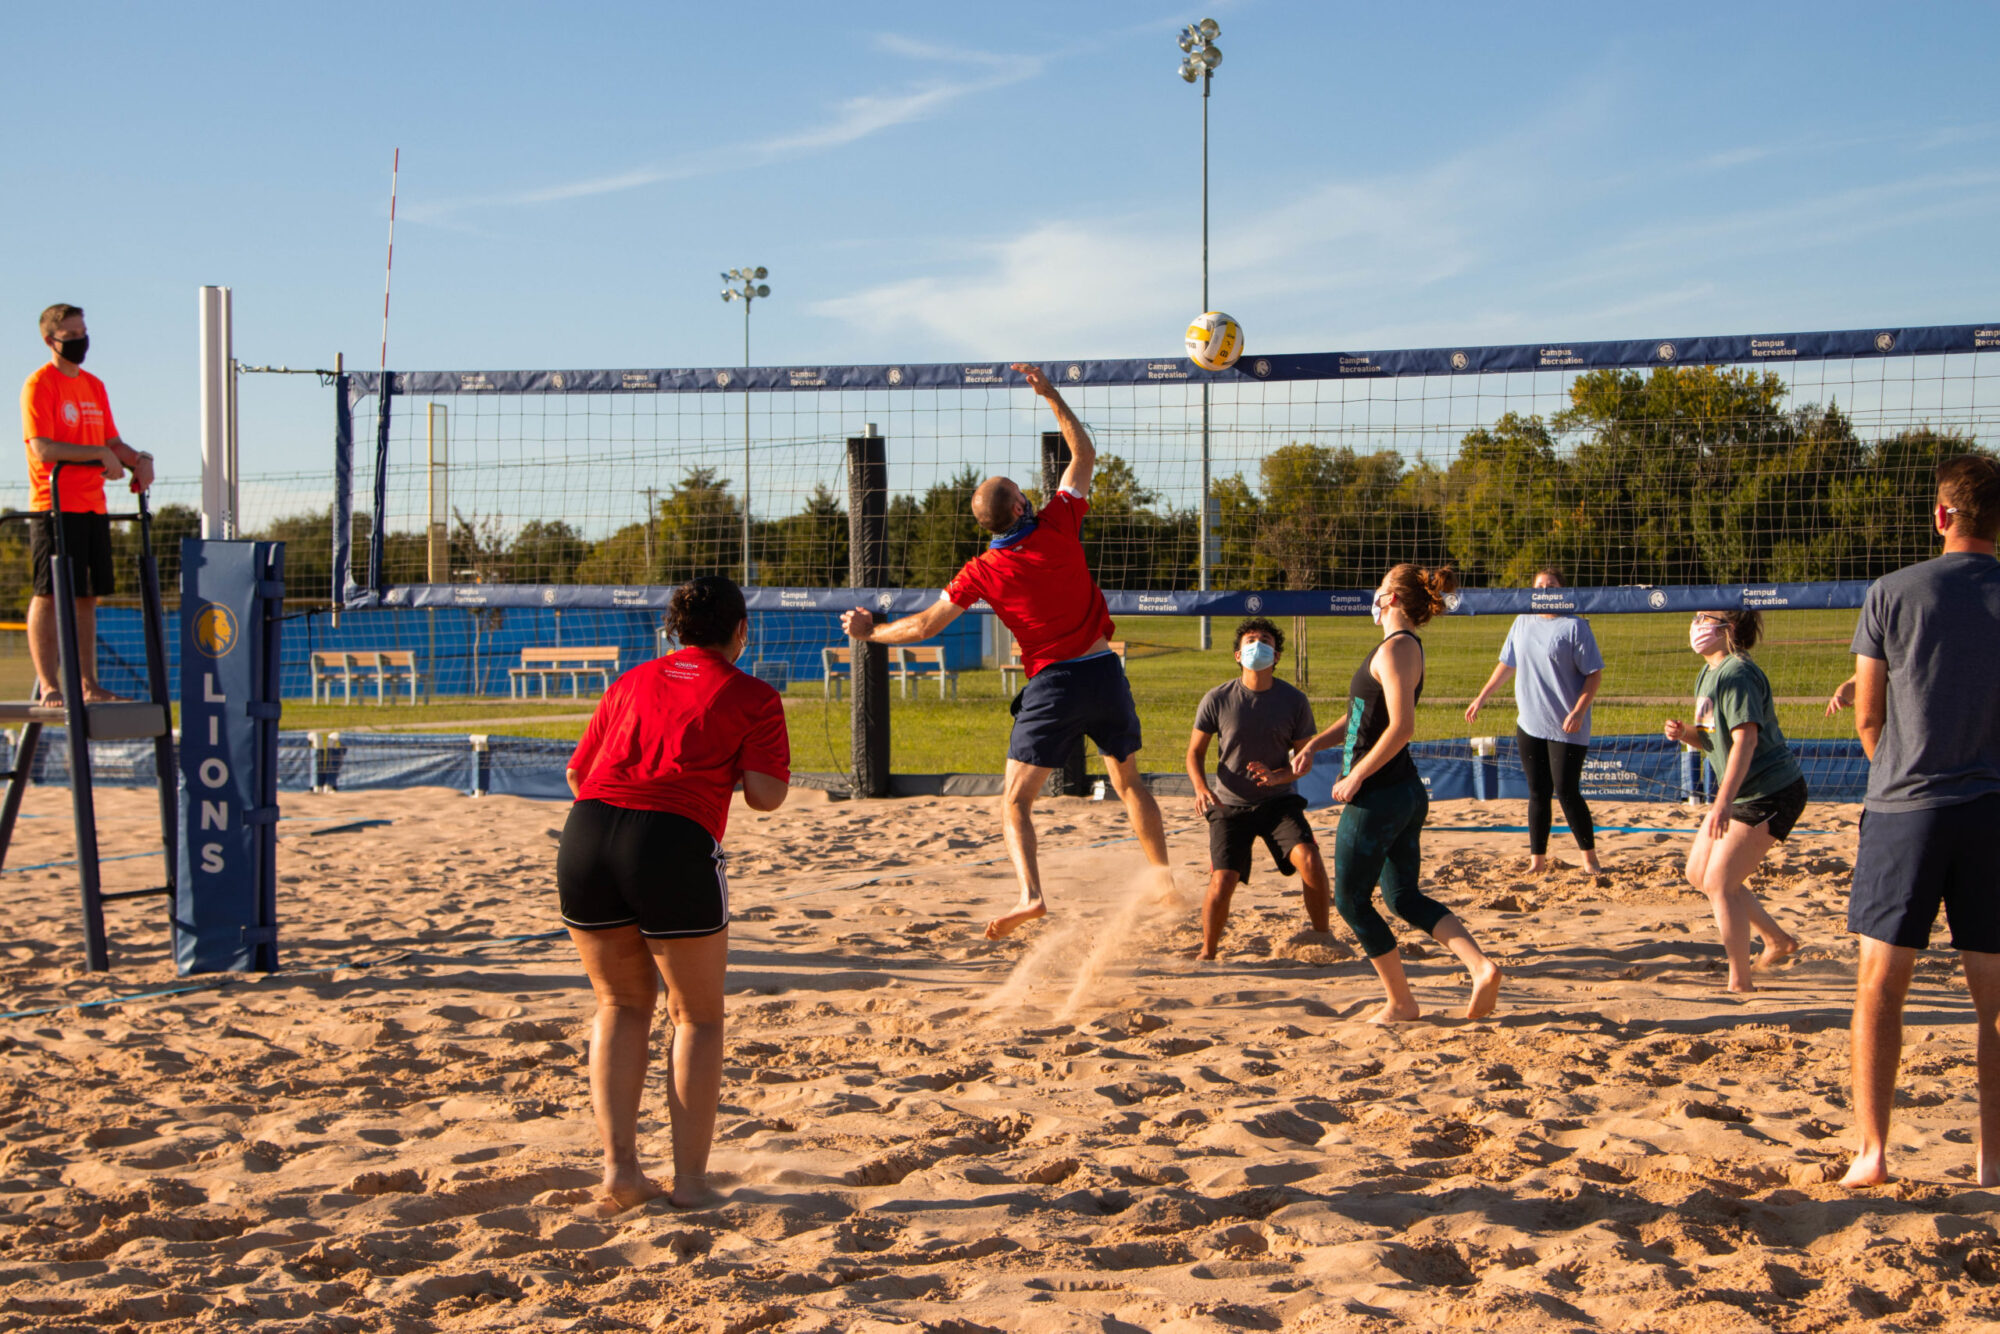 Sand Volleyball at Cain